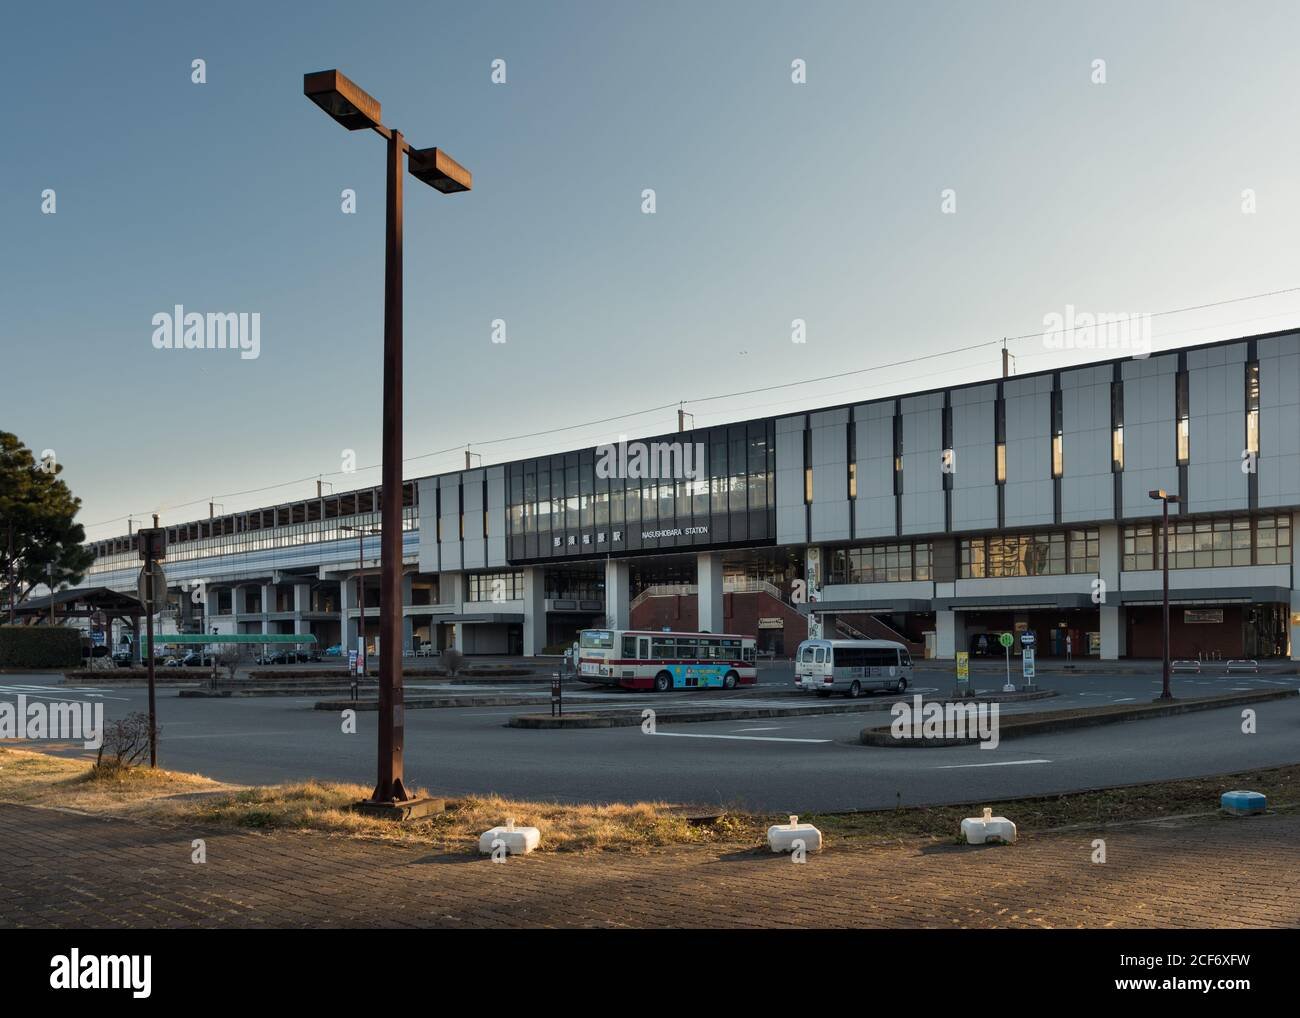 Nasushiobara Train Station With Buses Lined Up At Sunrise On A Clear Blue Morning In Tochigi Japan Stock Photo Alamy Sushi station is chicagoland's very first rotary sushi bar, not only do we offer superb quality sushi but we offer many. alamy